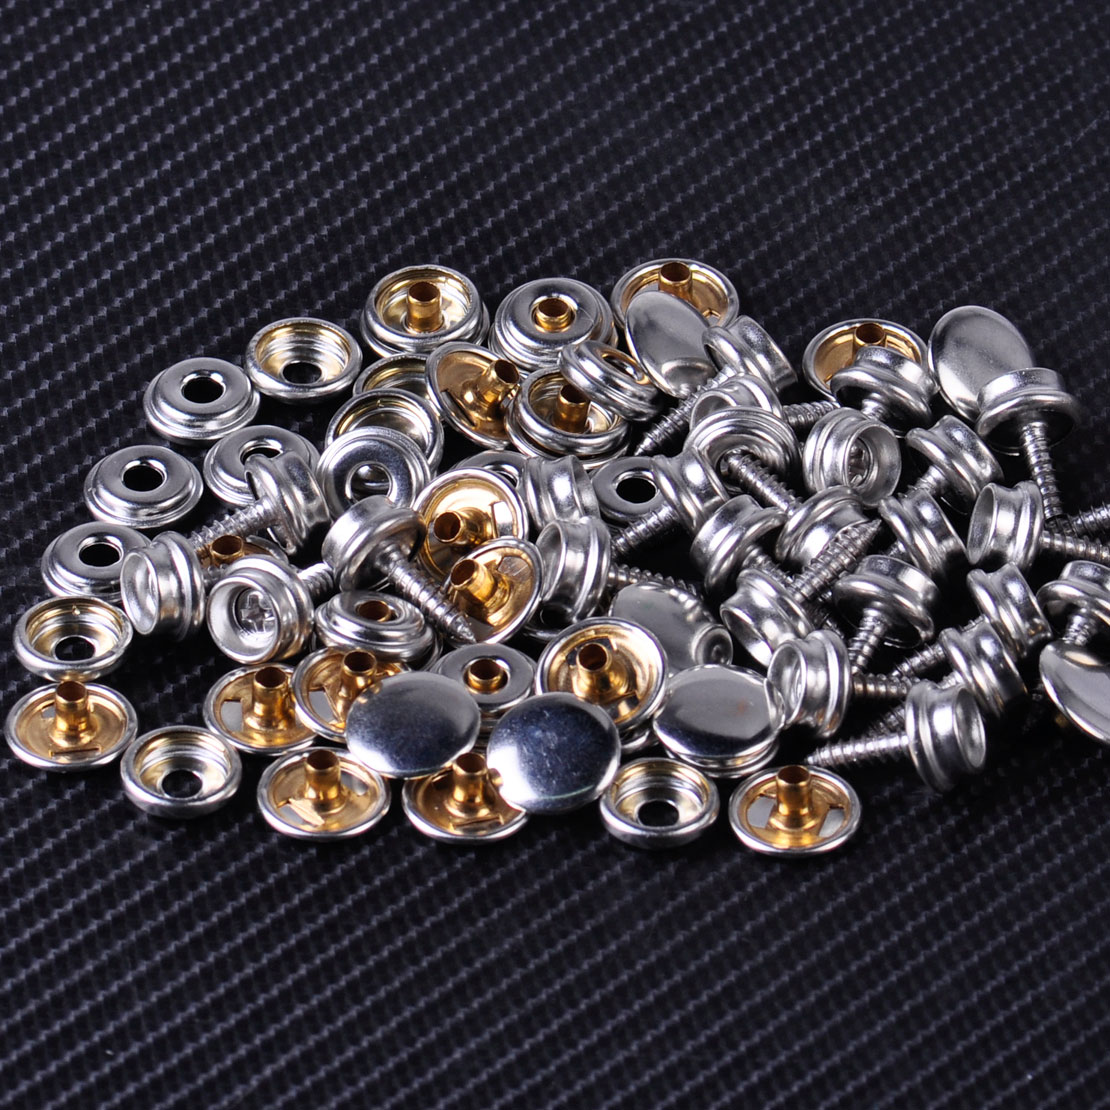 25set Silver Canvas Tent Canopy Snap Stud Cap Boat Marine Cover Fastener Stainless Steel Snap Button & Online Get Cheap Marine Canopies -Aliexpress.com | Alibaba Group